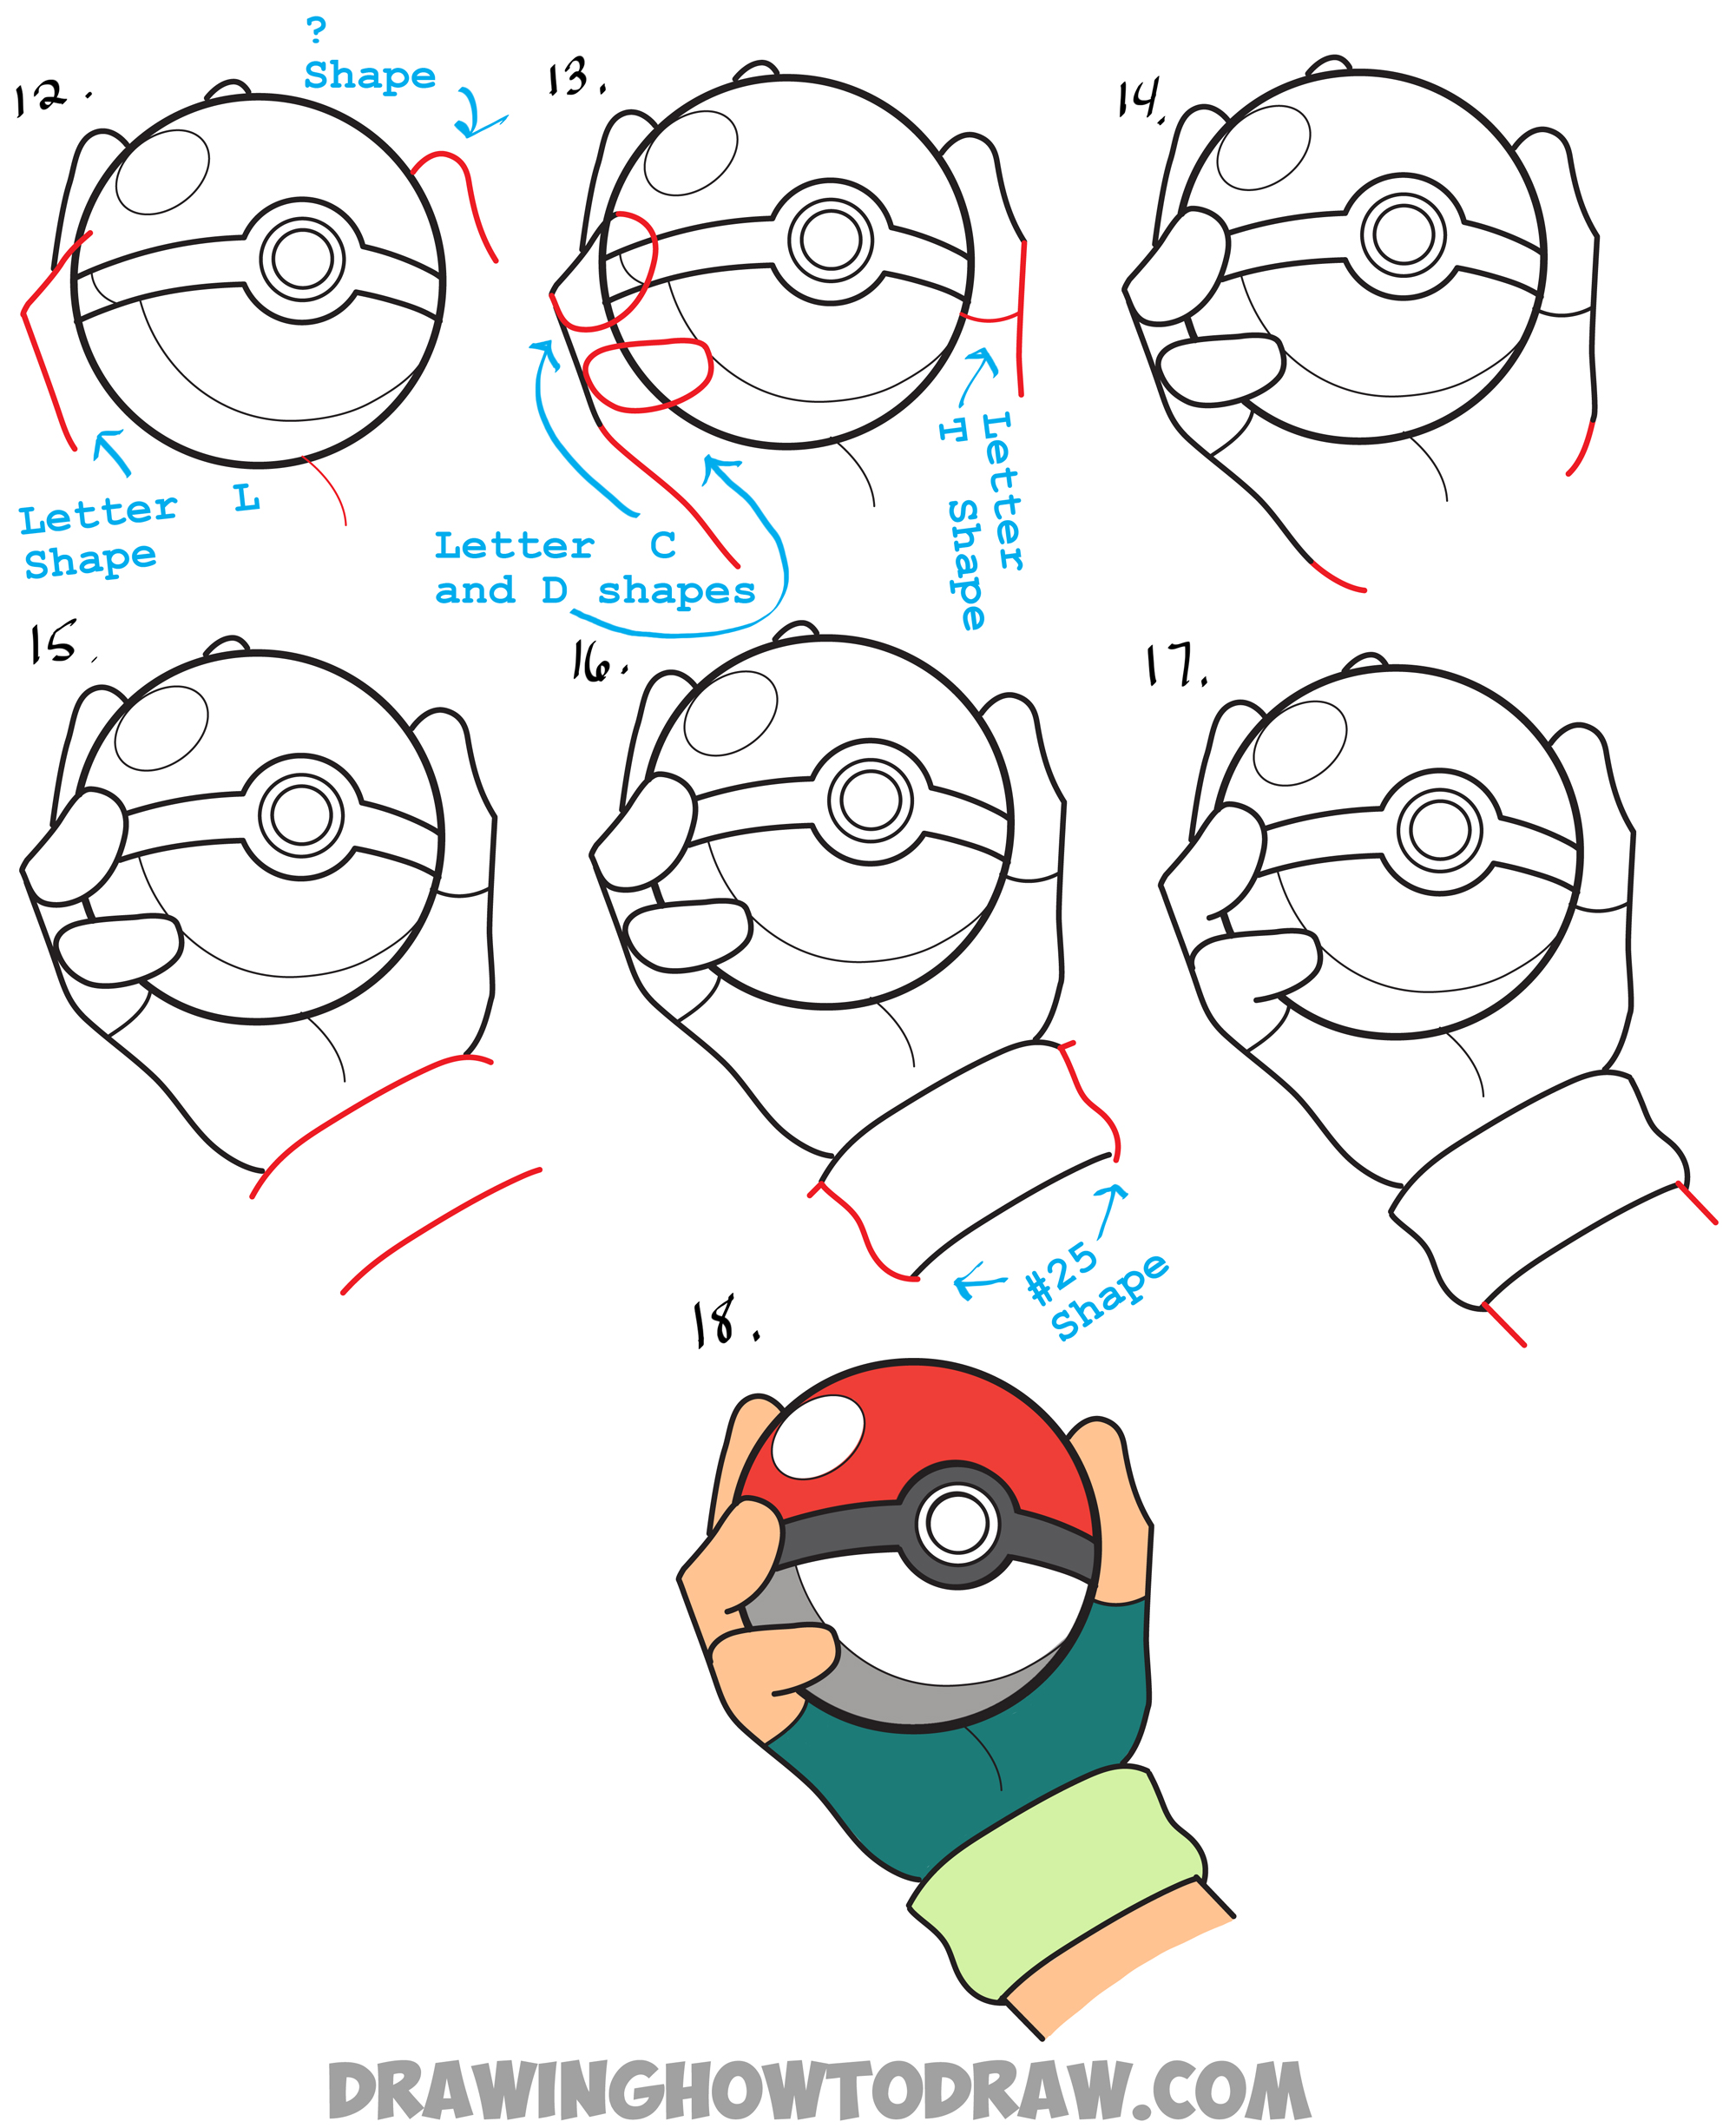 Drawn pokeball doodle In Steps Pokeball Step How